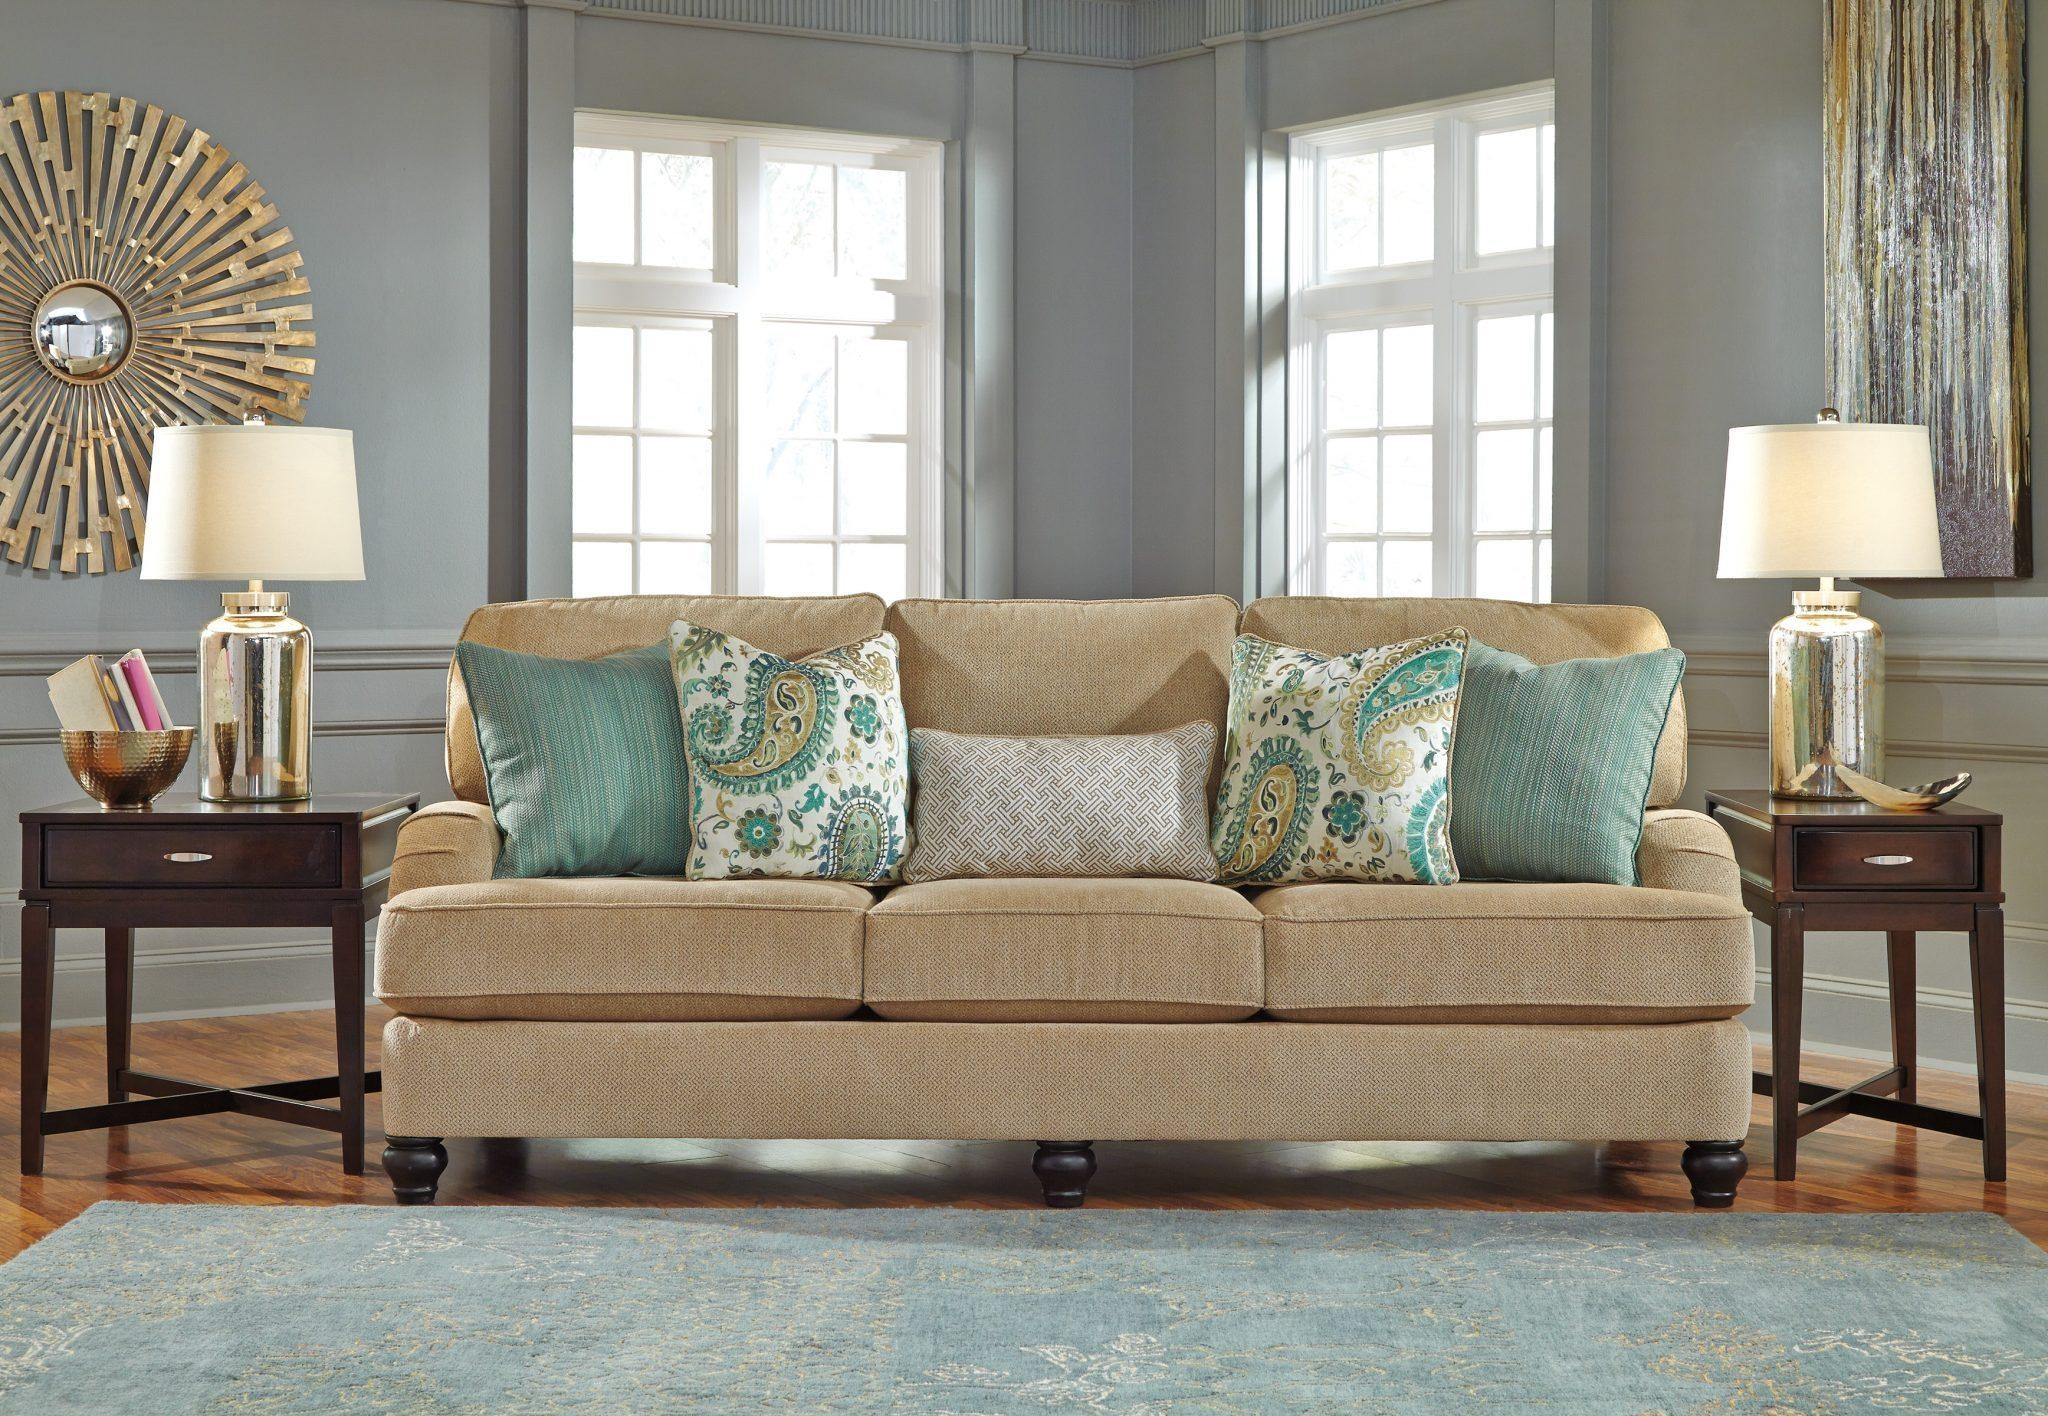 Best Furniture Mentor Oh: Furniture Store – Ashley Furniture Throughout Ashley Tufted Sofa (Image 10 of 20)